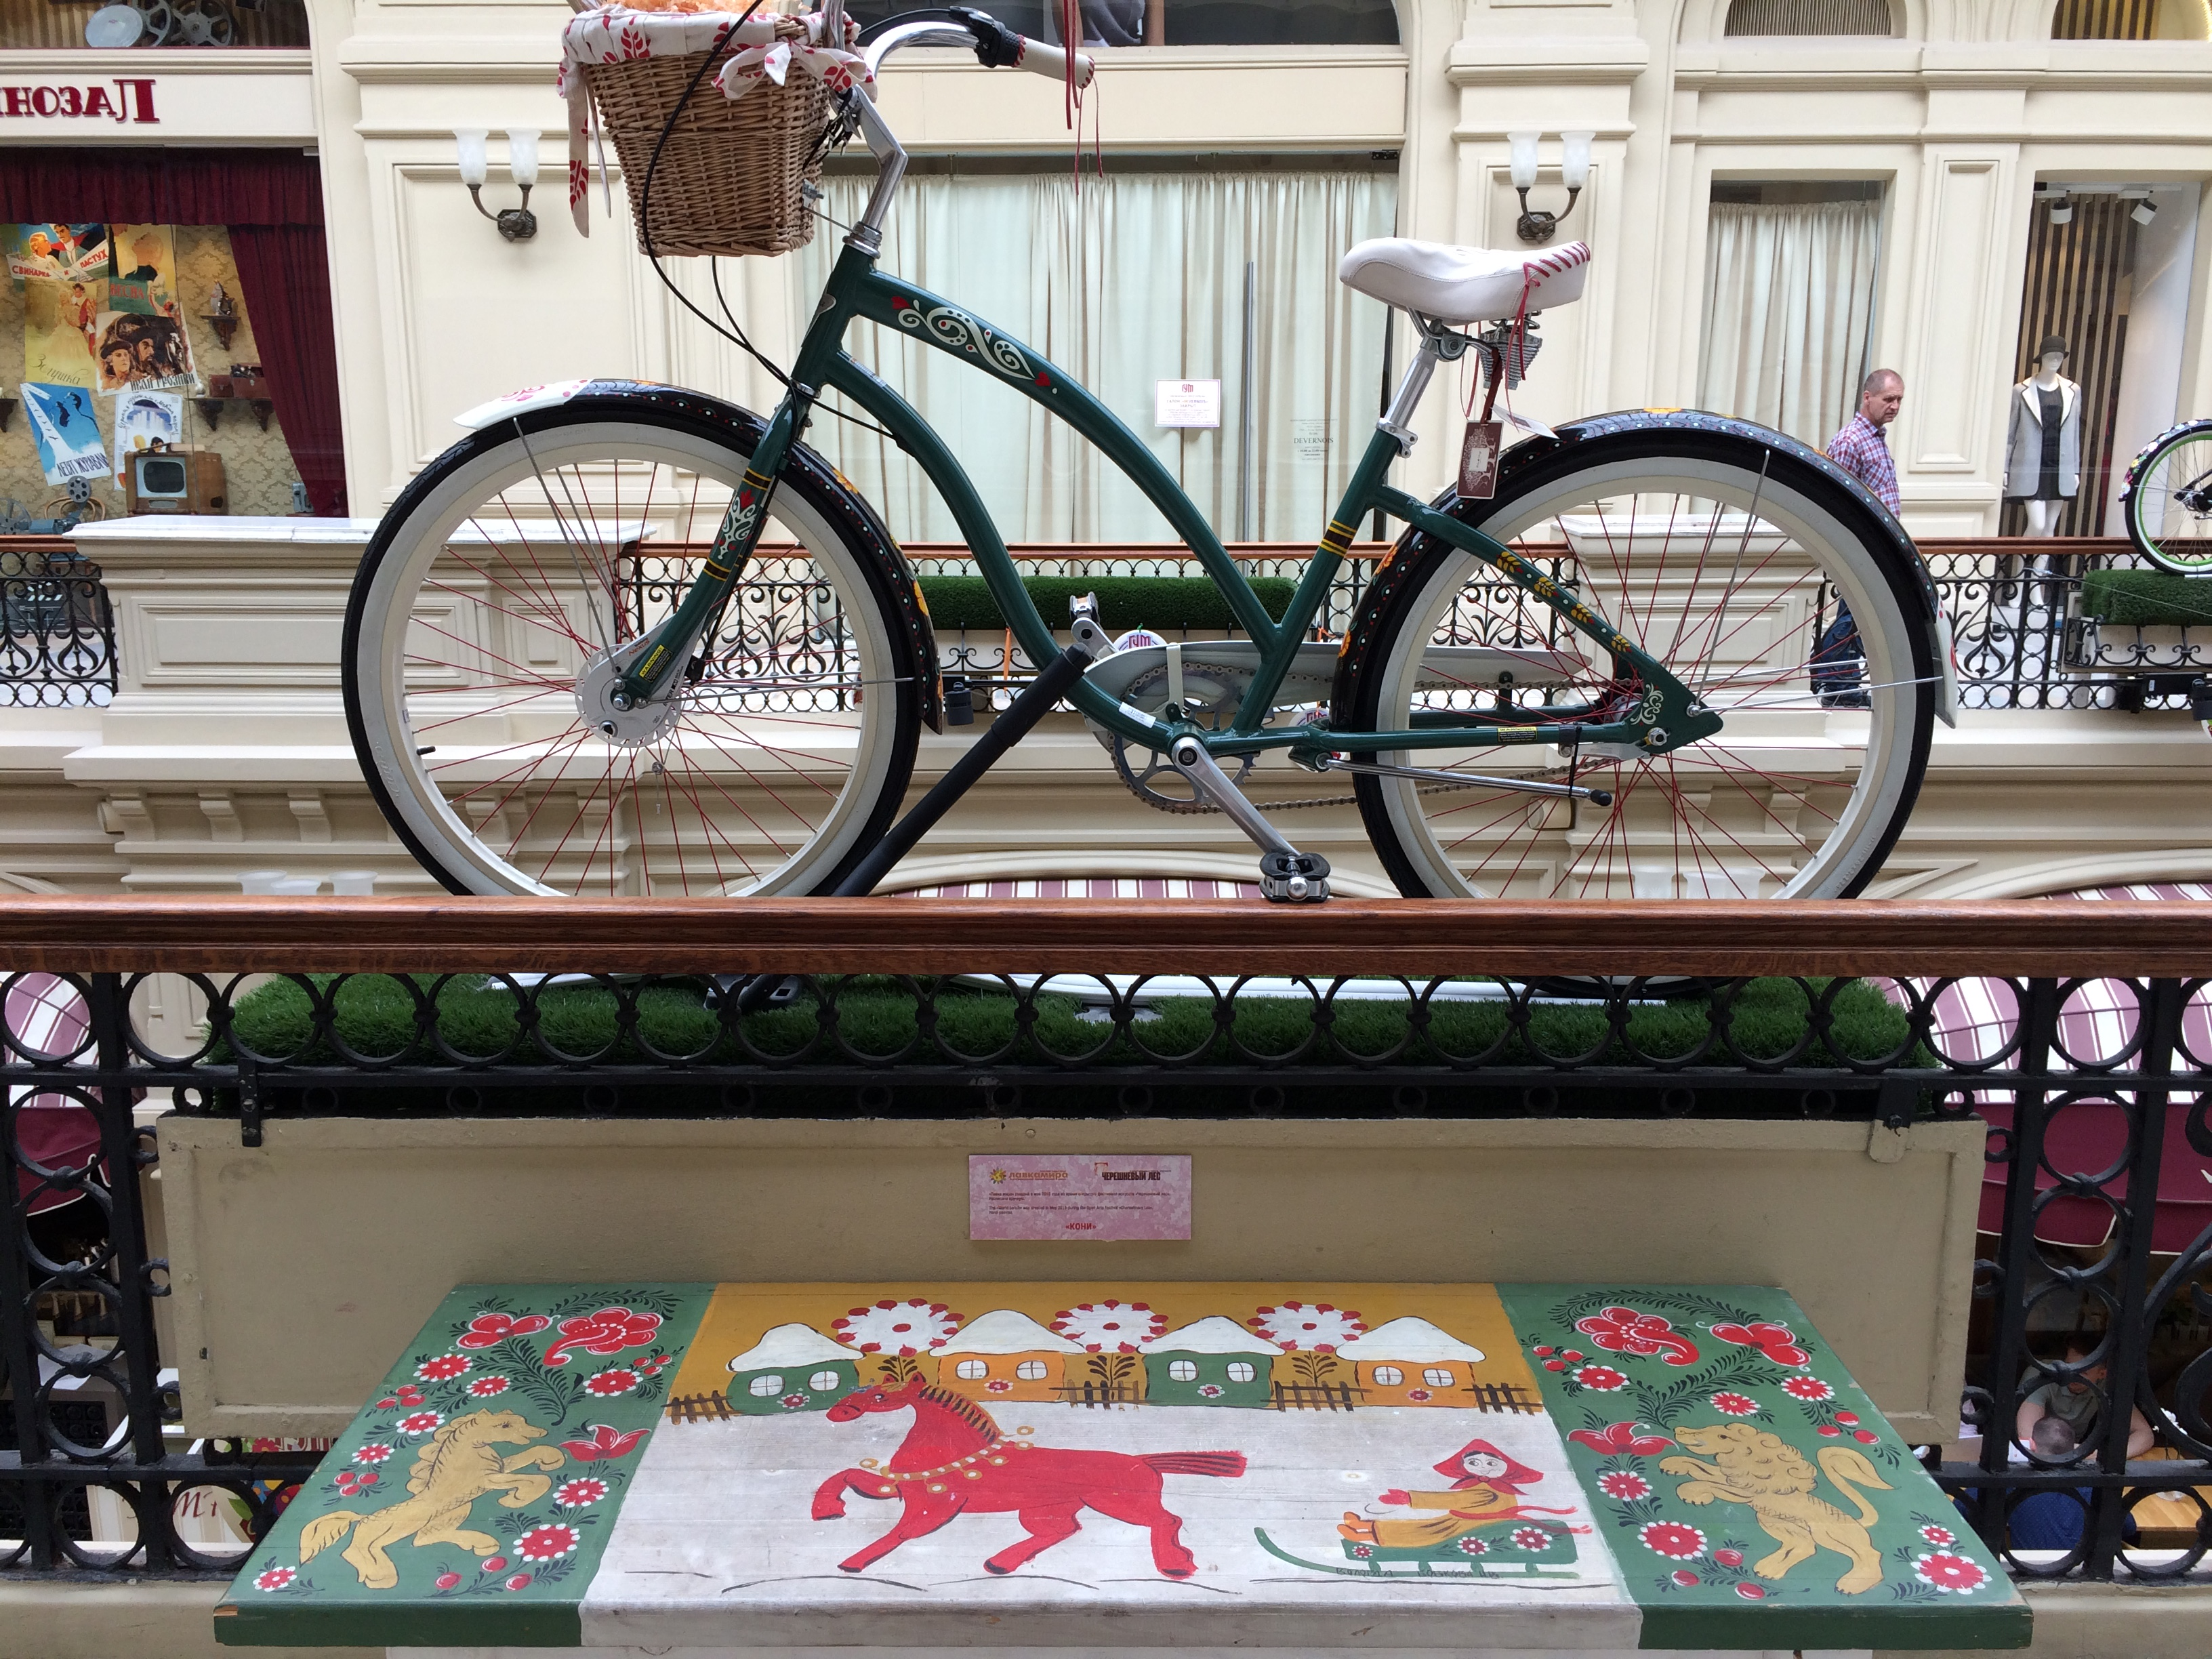 One of the bicycles and decorated tables